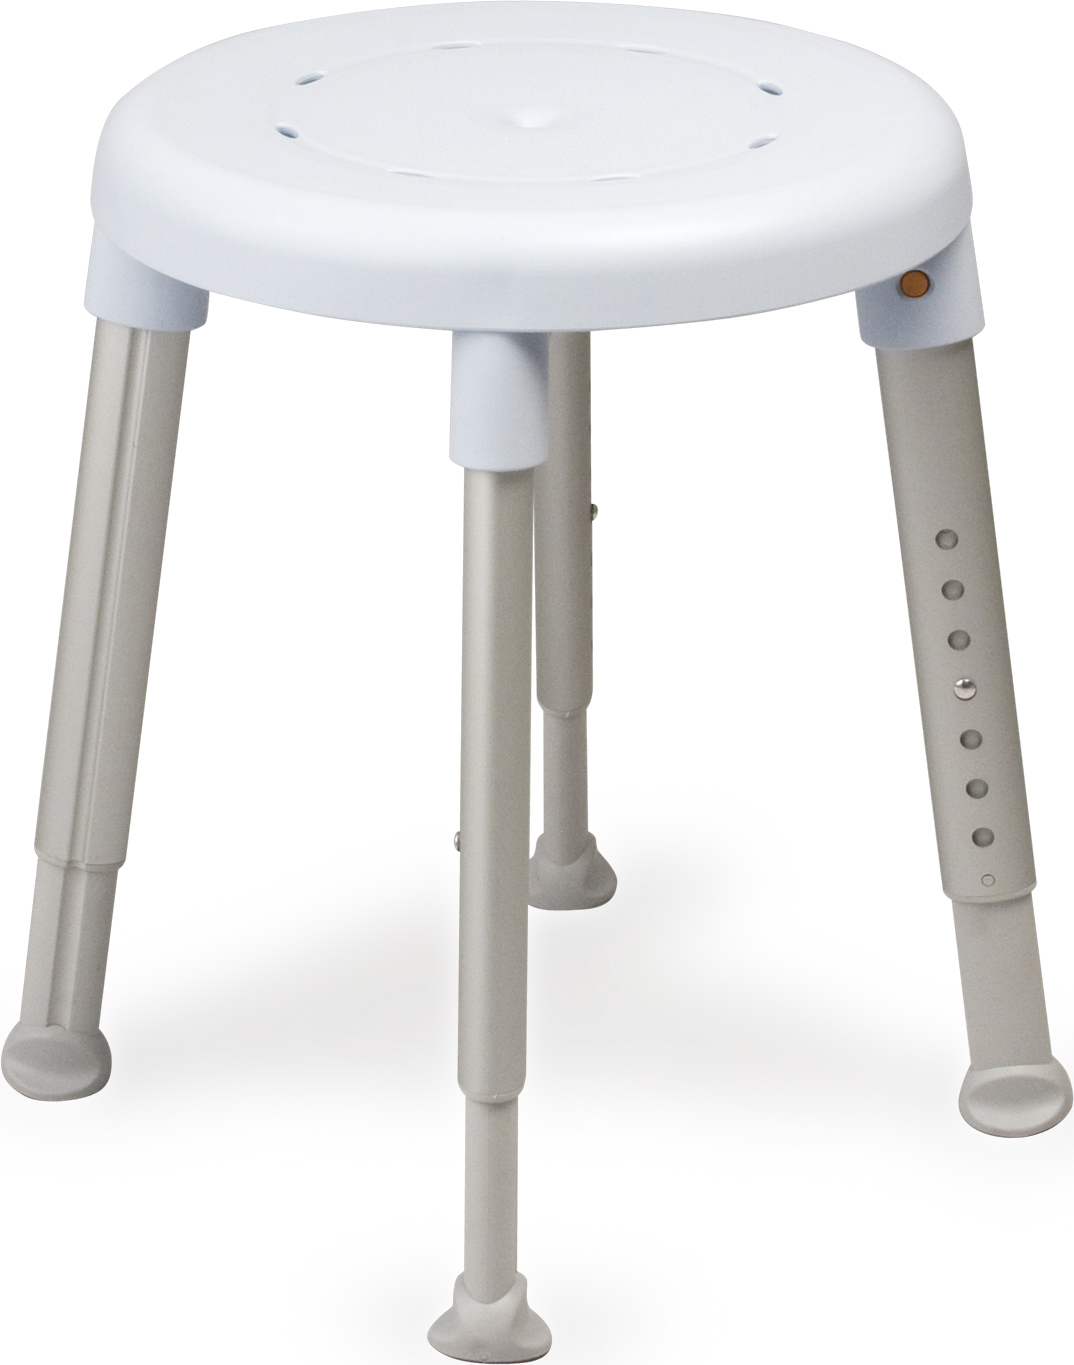 home chairs bath n white transfer accessories b depot stools adjustable stool shower bench tub the delta